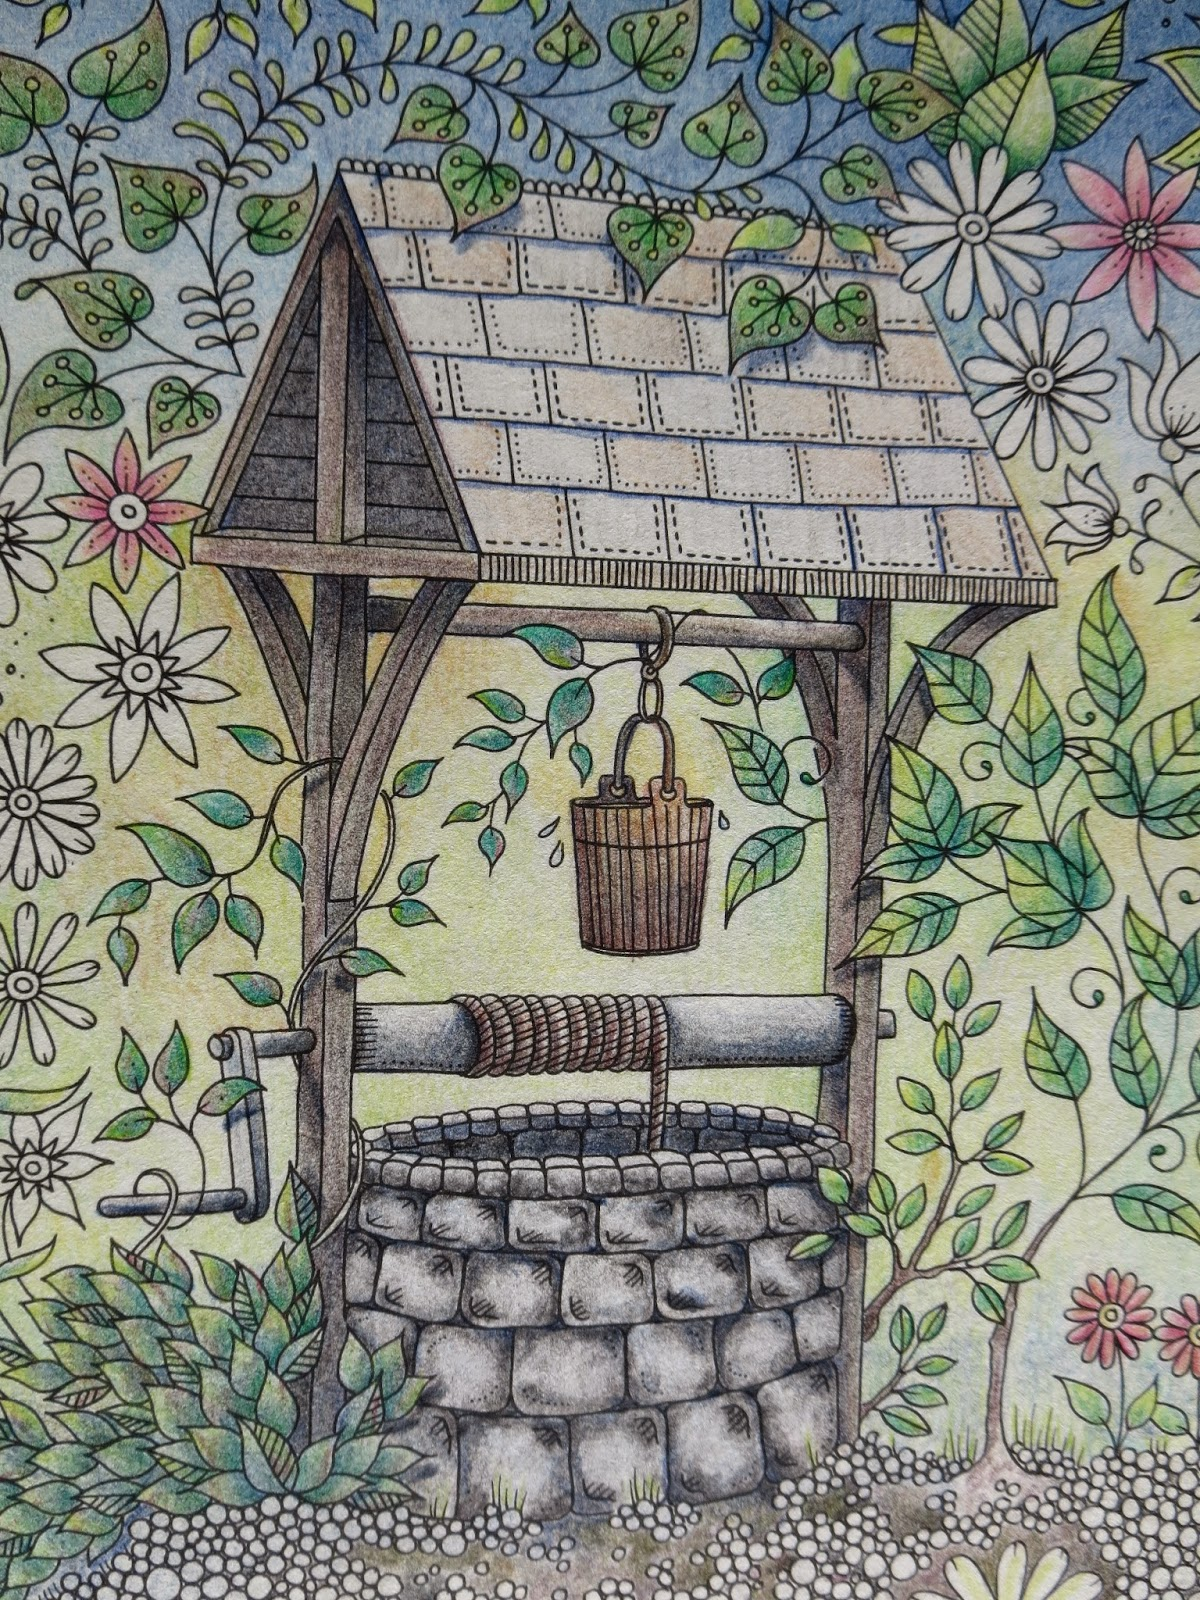 When It Comes To Colouring The Well In Johanna Basfords Amazing Book Secret Garden I Particularly Like Stones